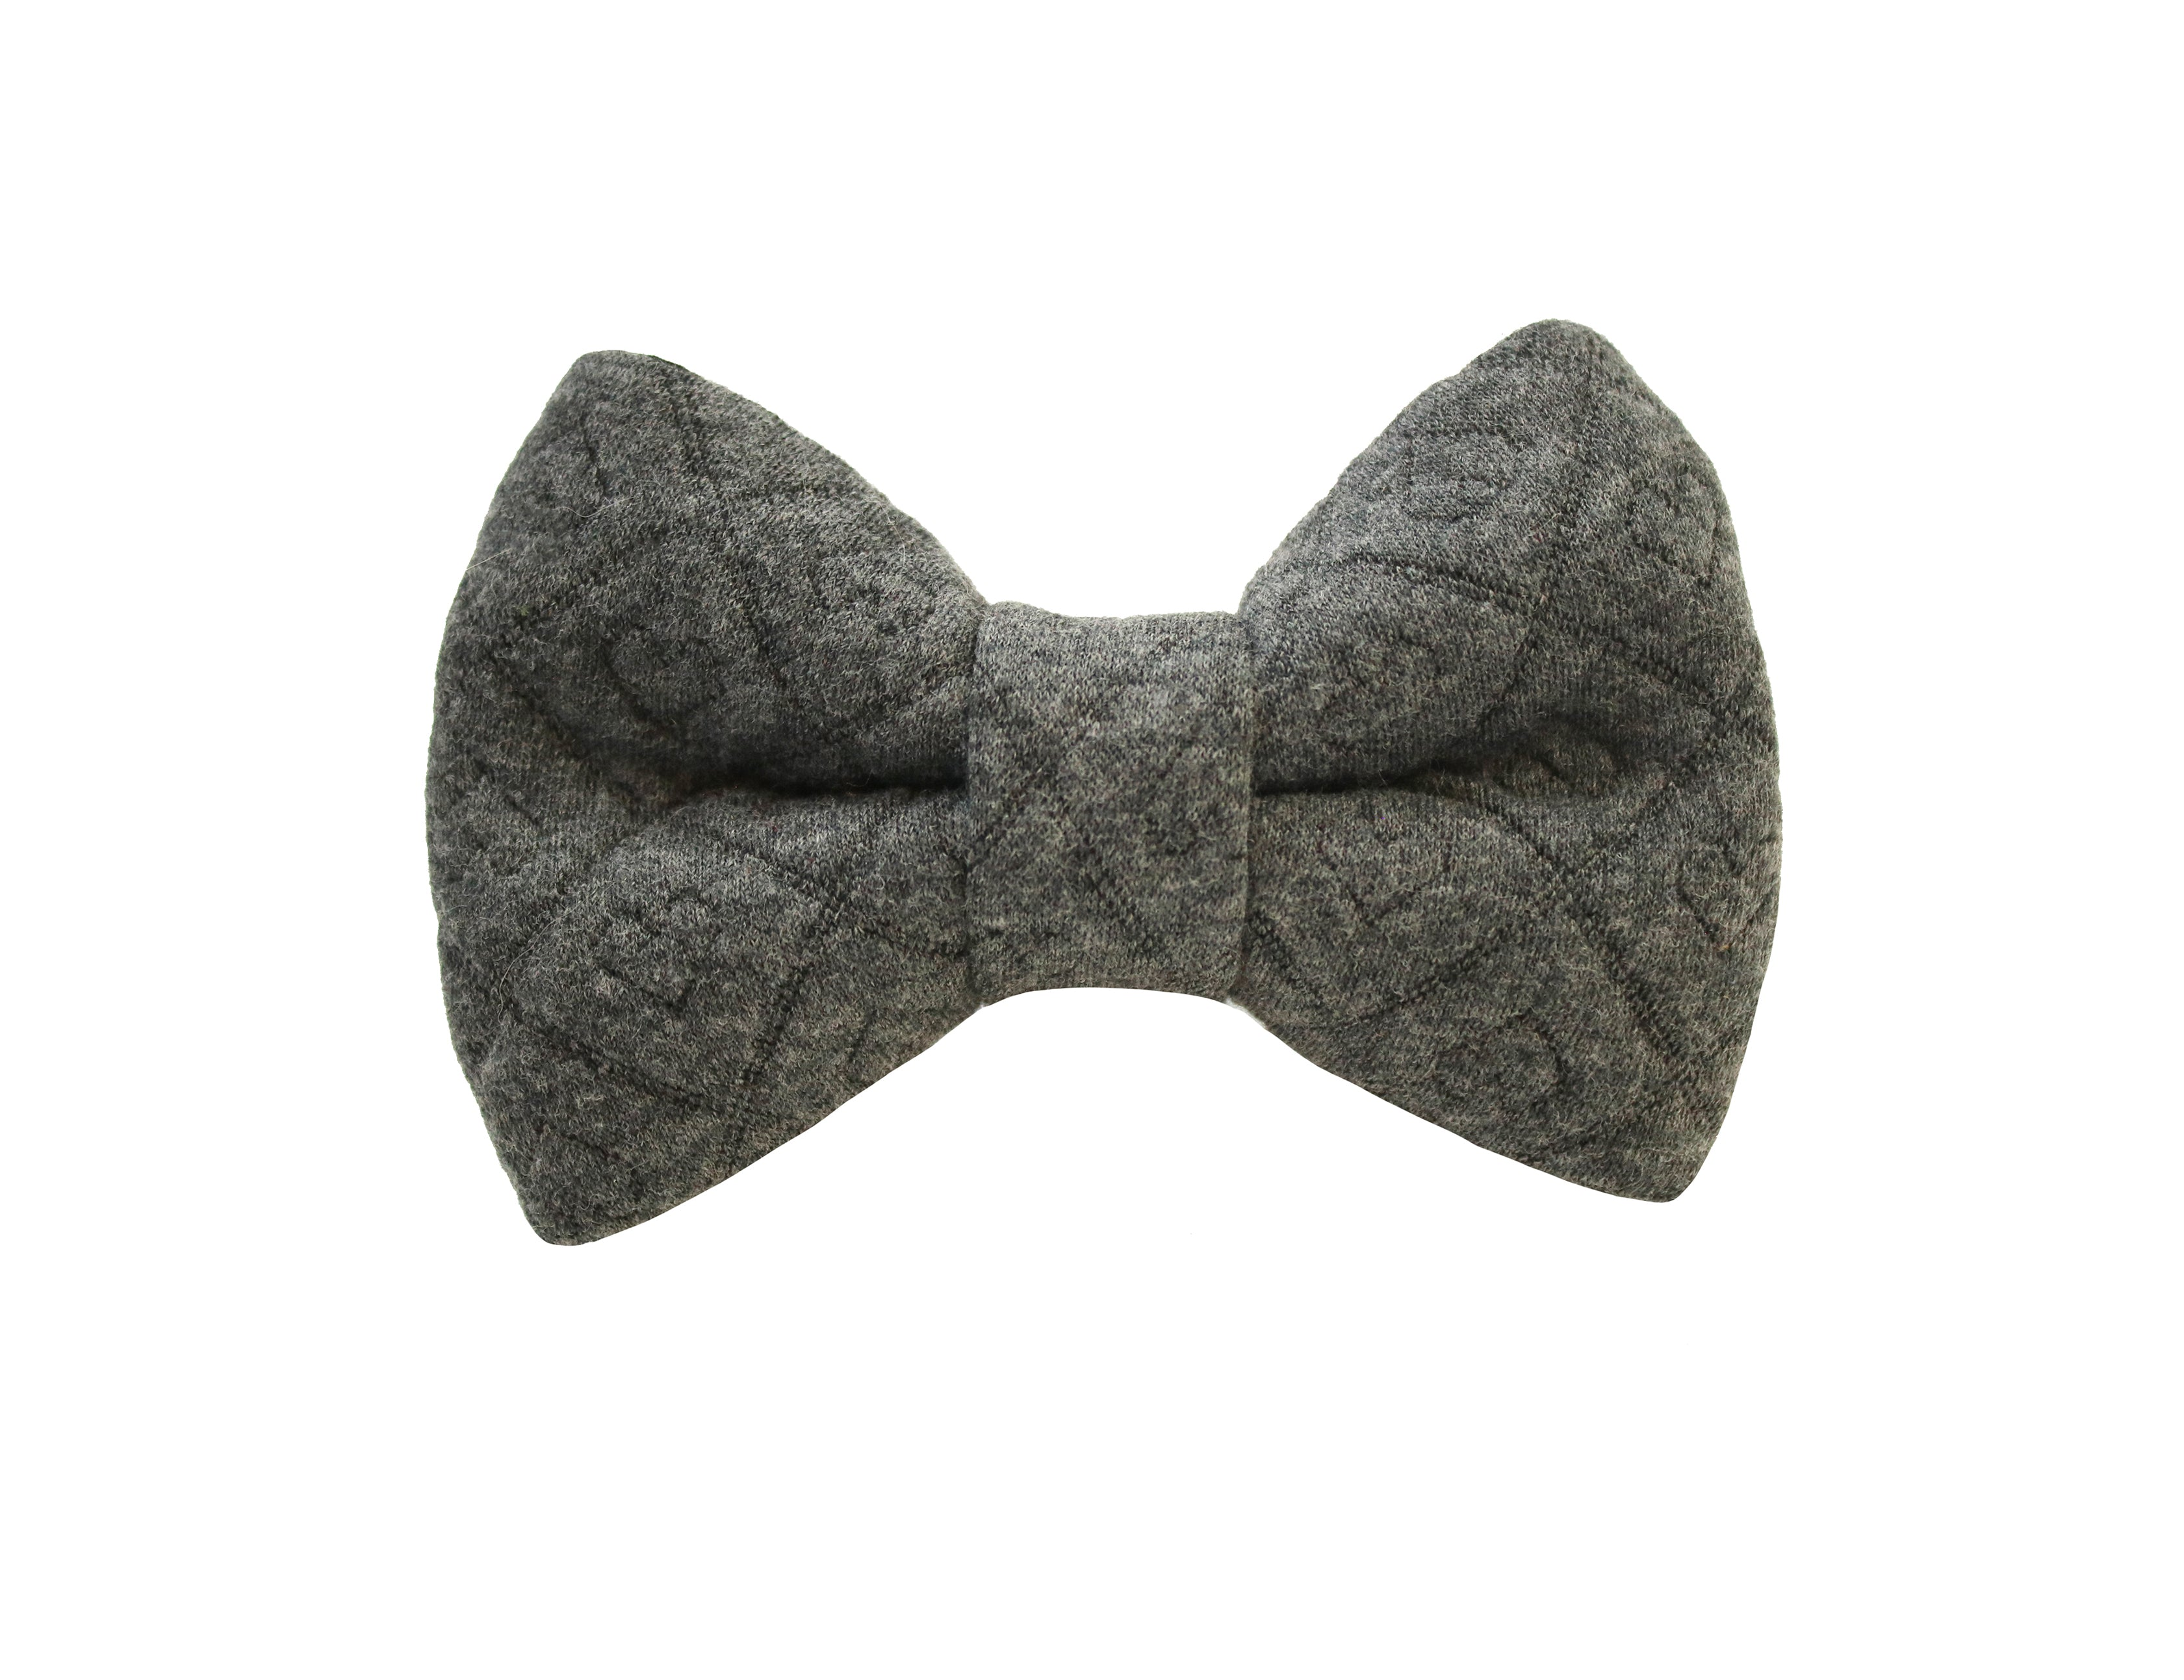 Sweater Hearts Grey Bow Tie